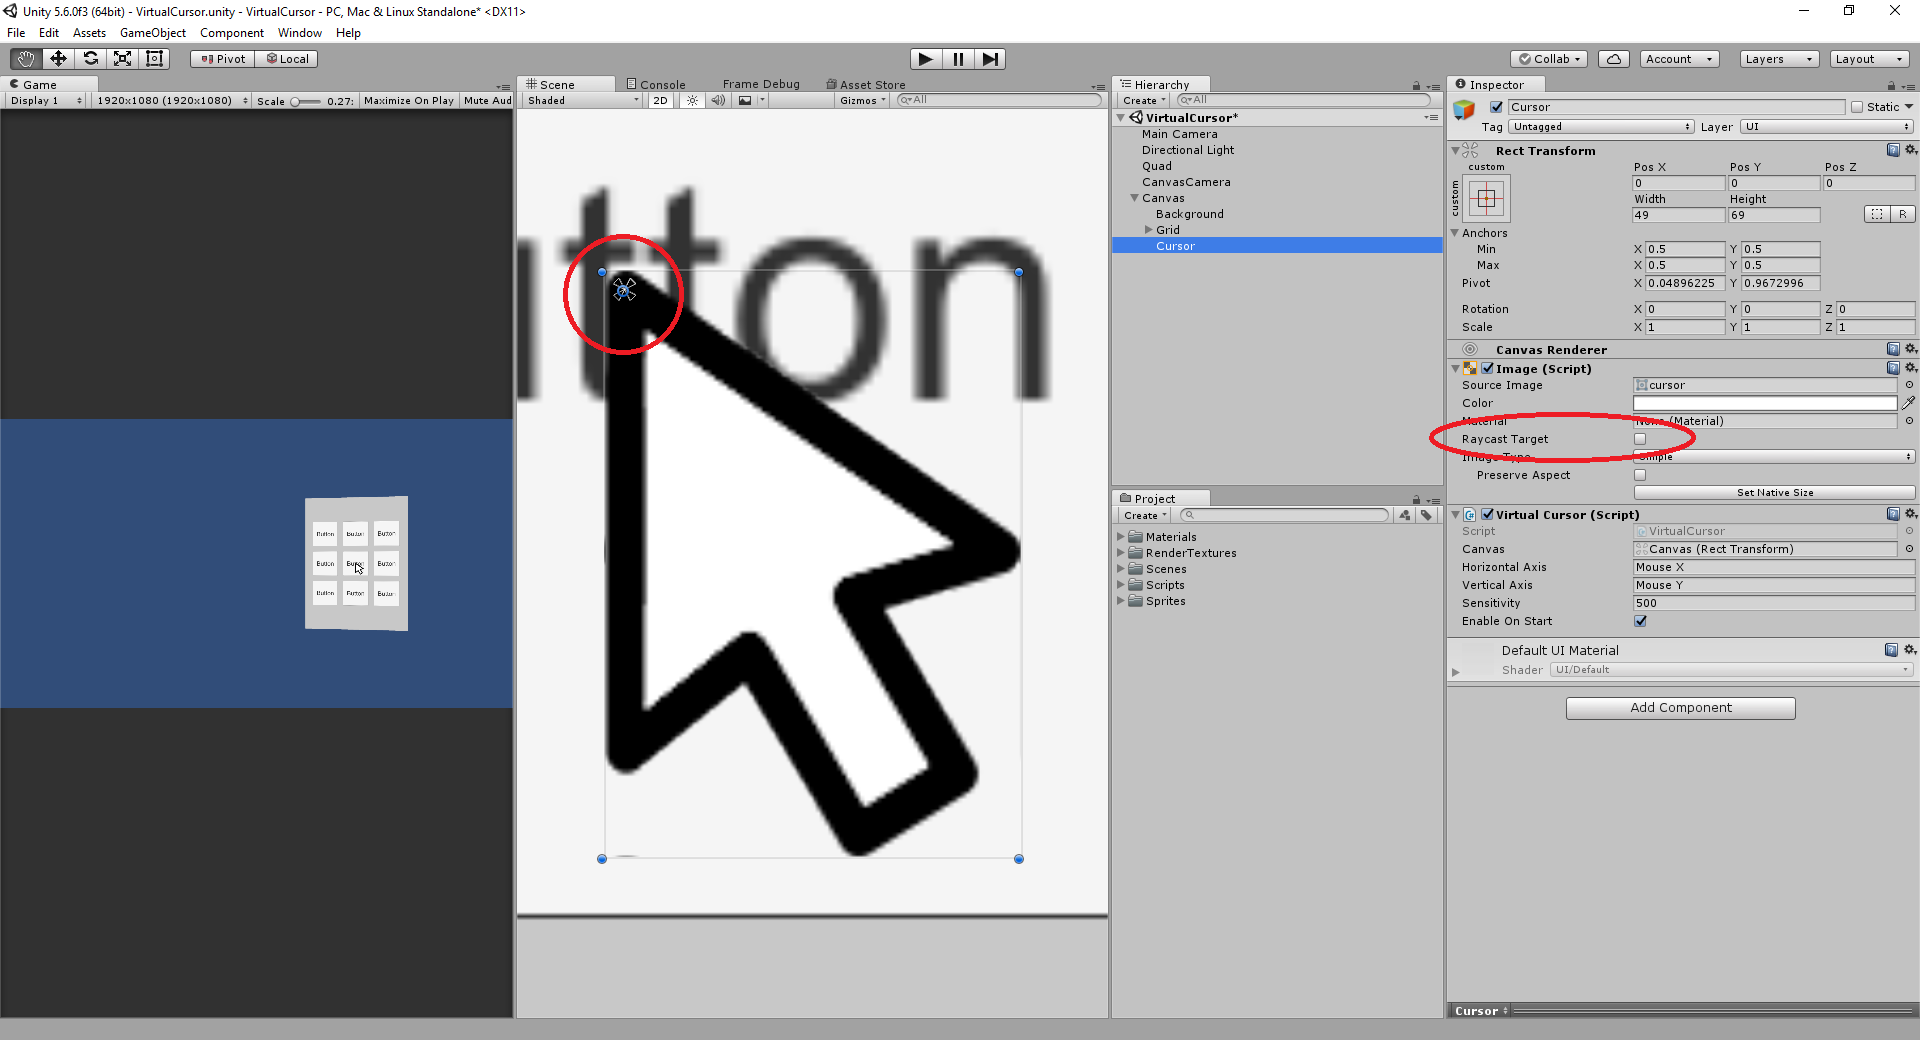 Paralycid - Implementing a virtual cursor with Unity